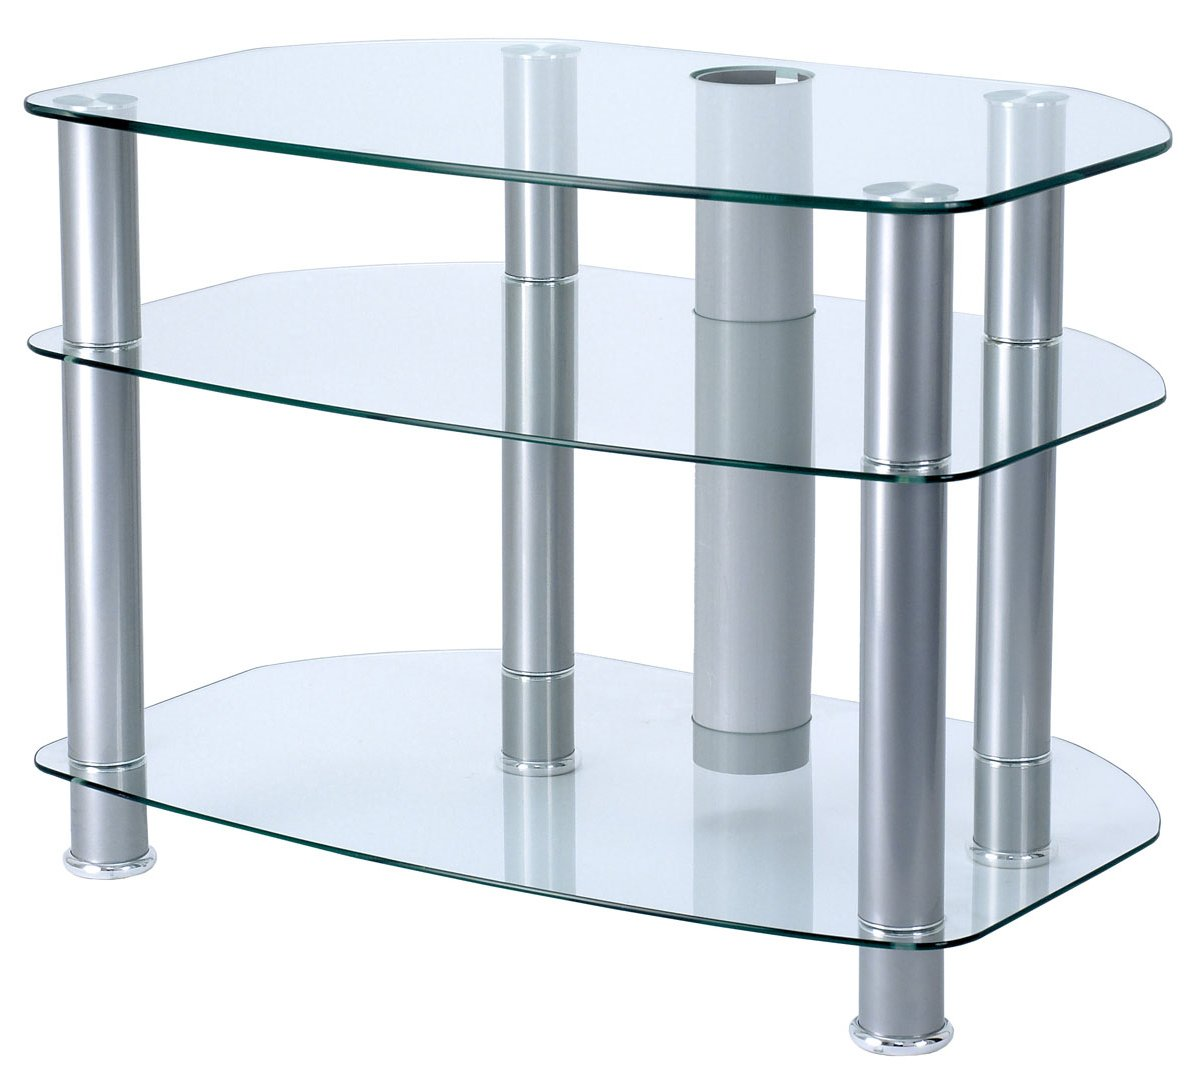 alphason clear glass tv stand for up to  tvs - alphason clear glass tv stand for up to \ tvs main image